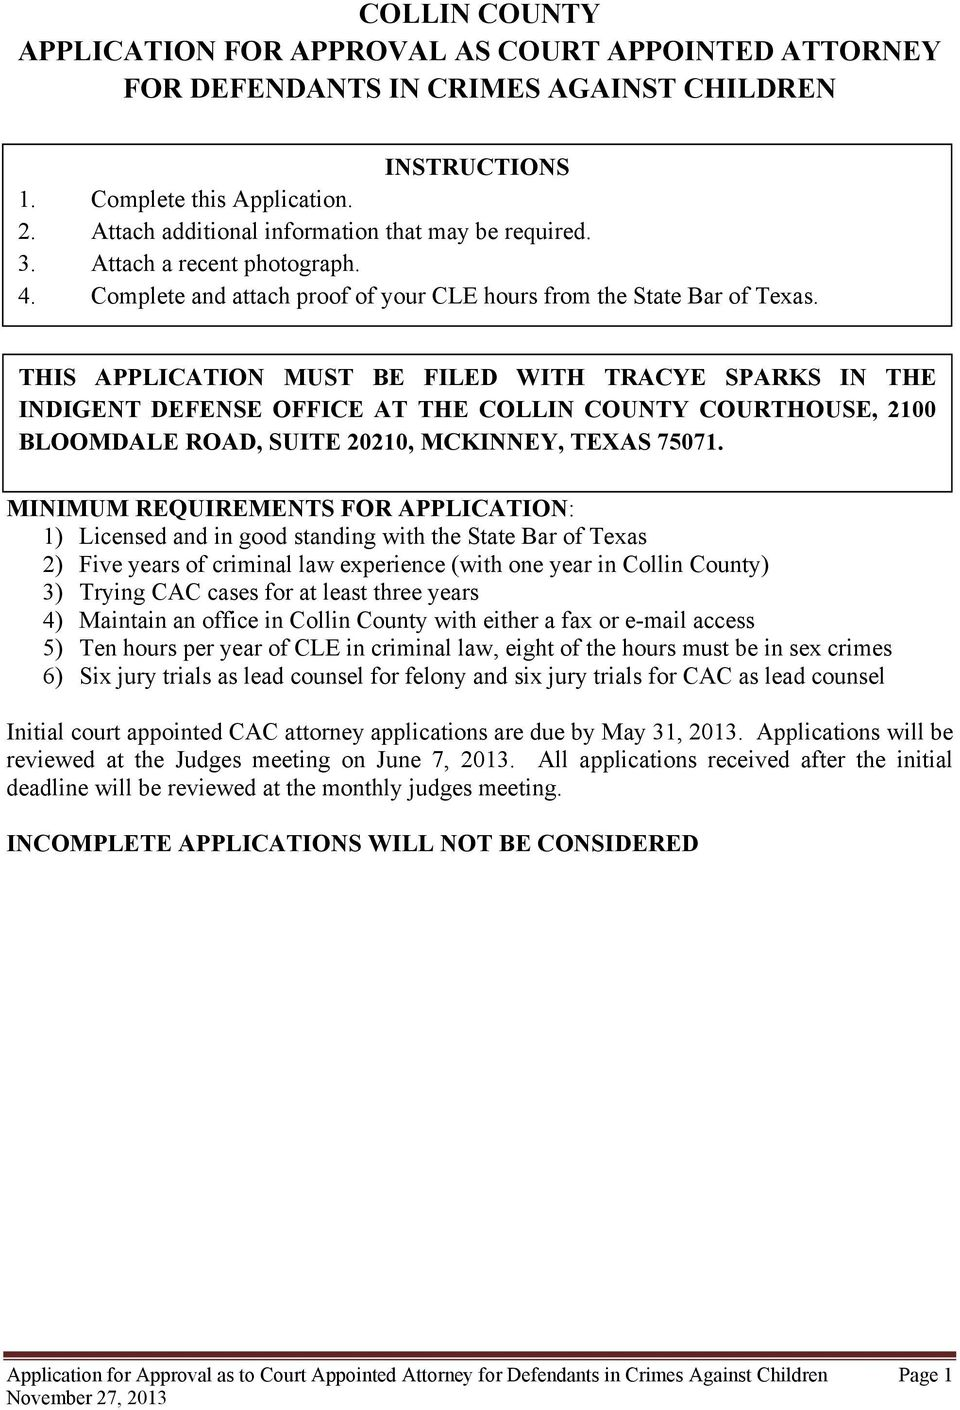 THIS APPLICATION MUST BE FILED WITH TRACYE SPARKS IN THE INDIGENT DEFENSE OFFICE AT THE COLLIN COUNTY COURTHOUSE, 2100 BLOOMDALE ROAD, SUITE 20210, MCKINNEY, TEXAS 75071.